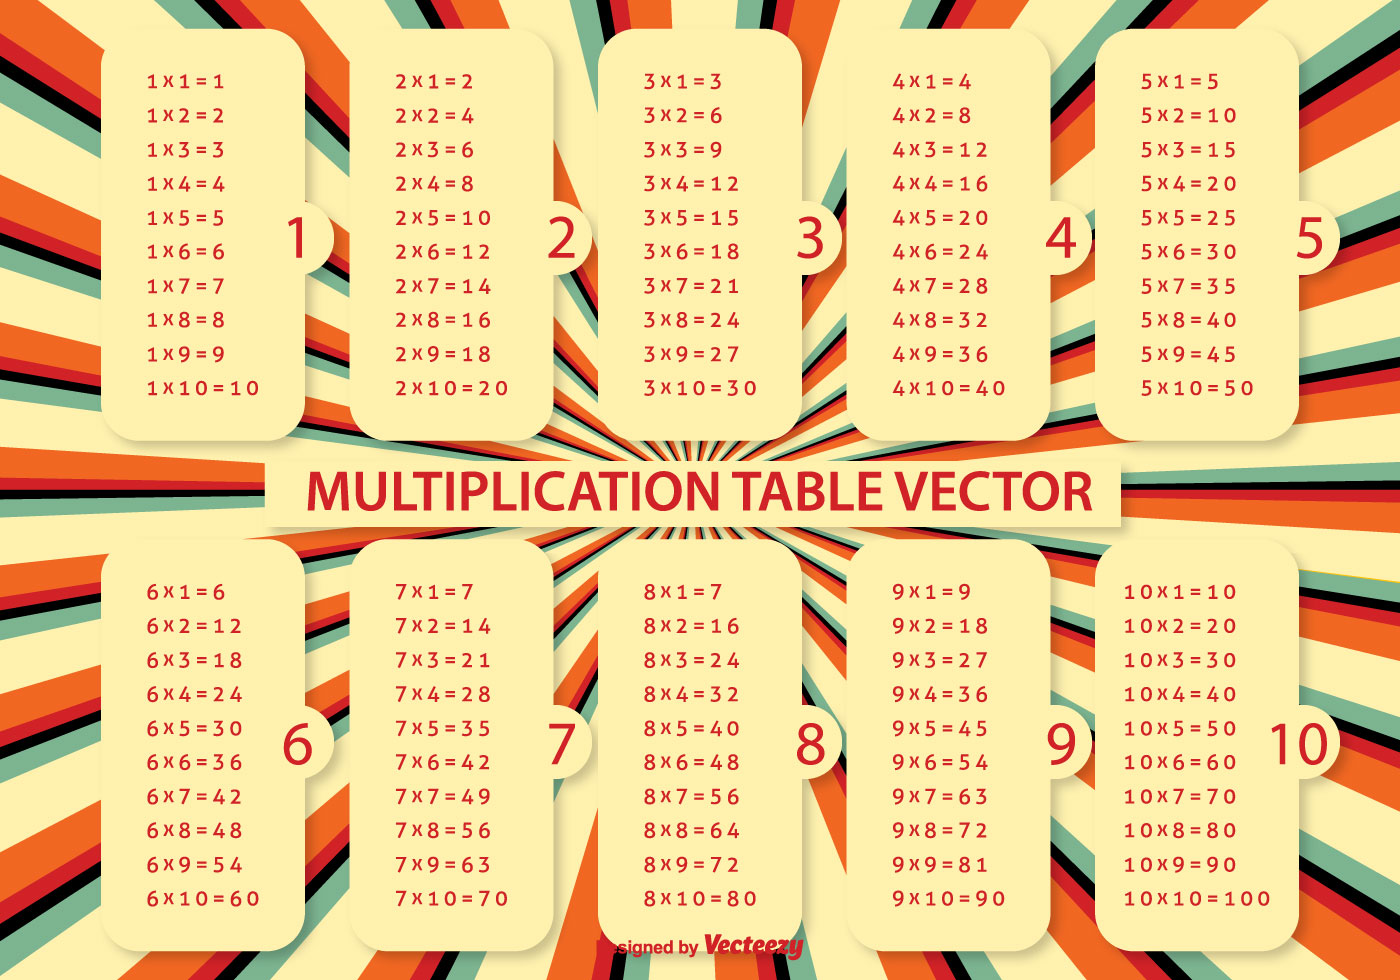 Multiplication Table Vector - Download Free Vector Art, Stock Graphics &  Images